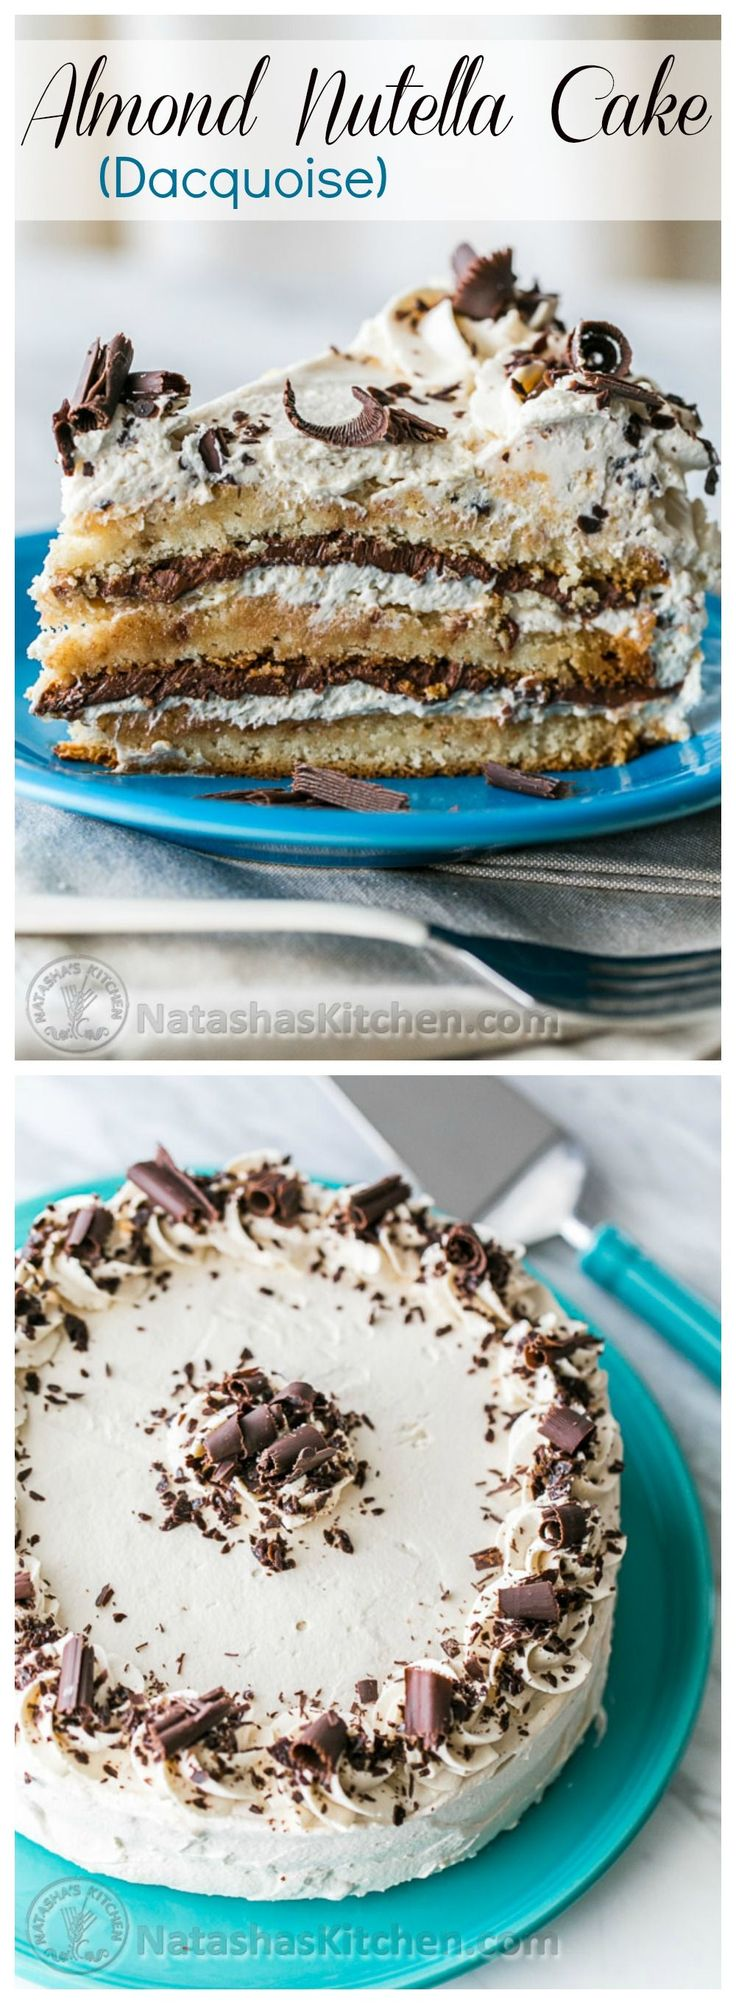 Almond Nutella Cake Recipe (Dacquoise) – Layers of scrumptious goodness! And it's gluten free! @natashaskitchen